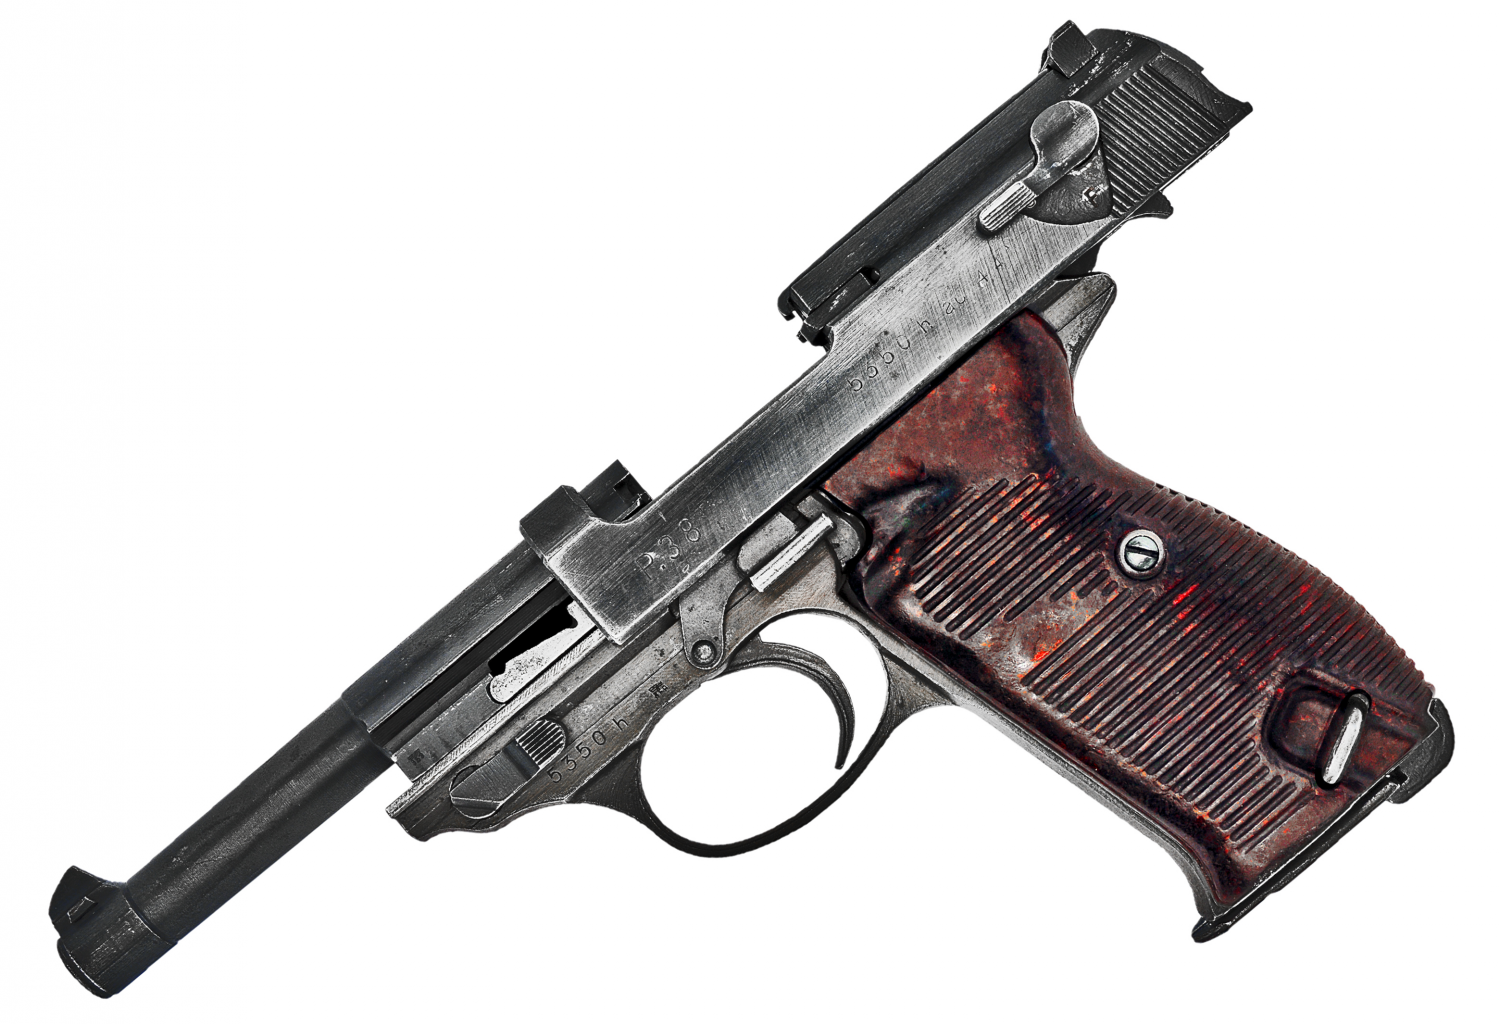 A Look Inside The Walther P38 The Firearm Blogthe